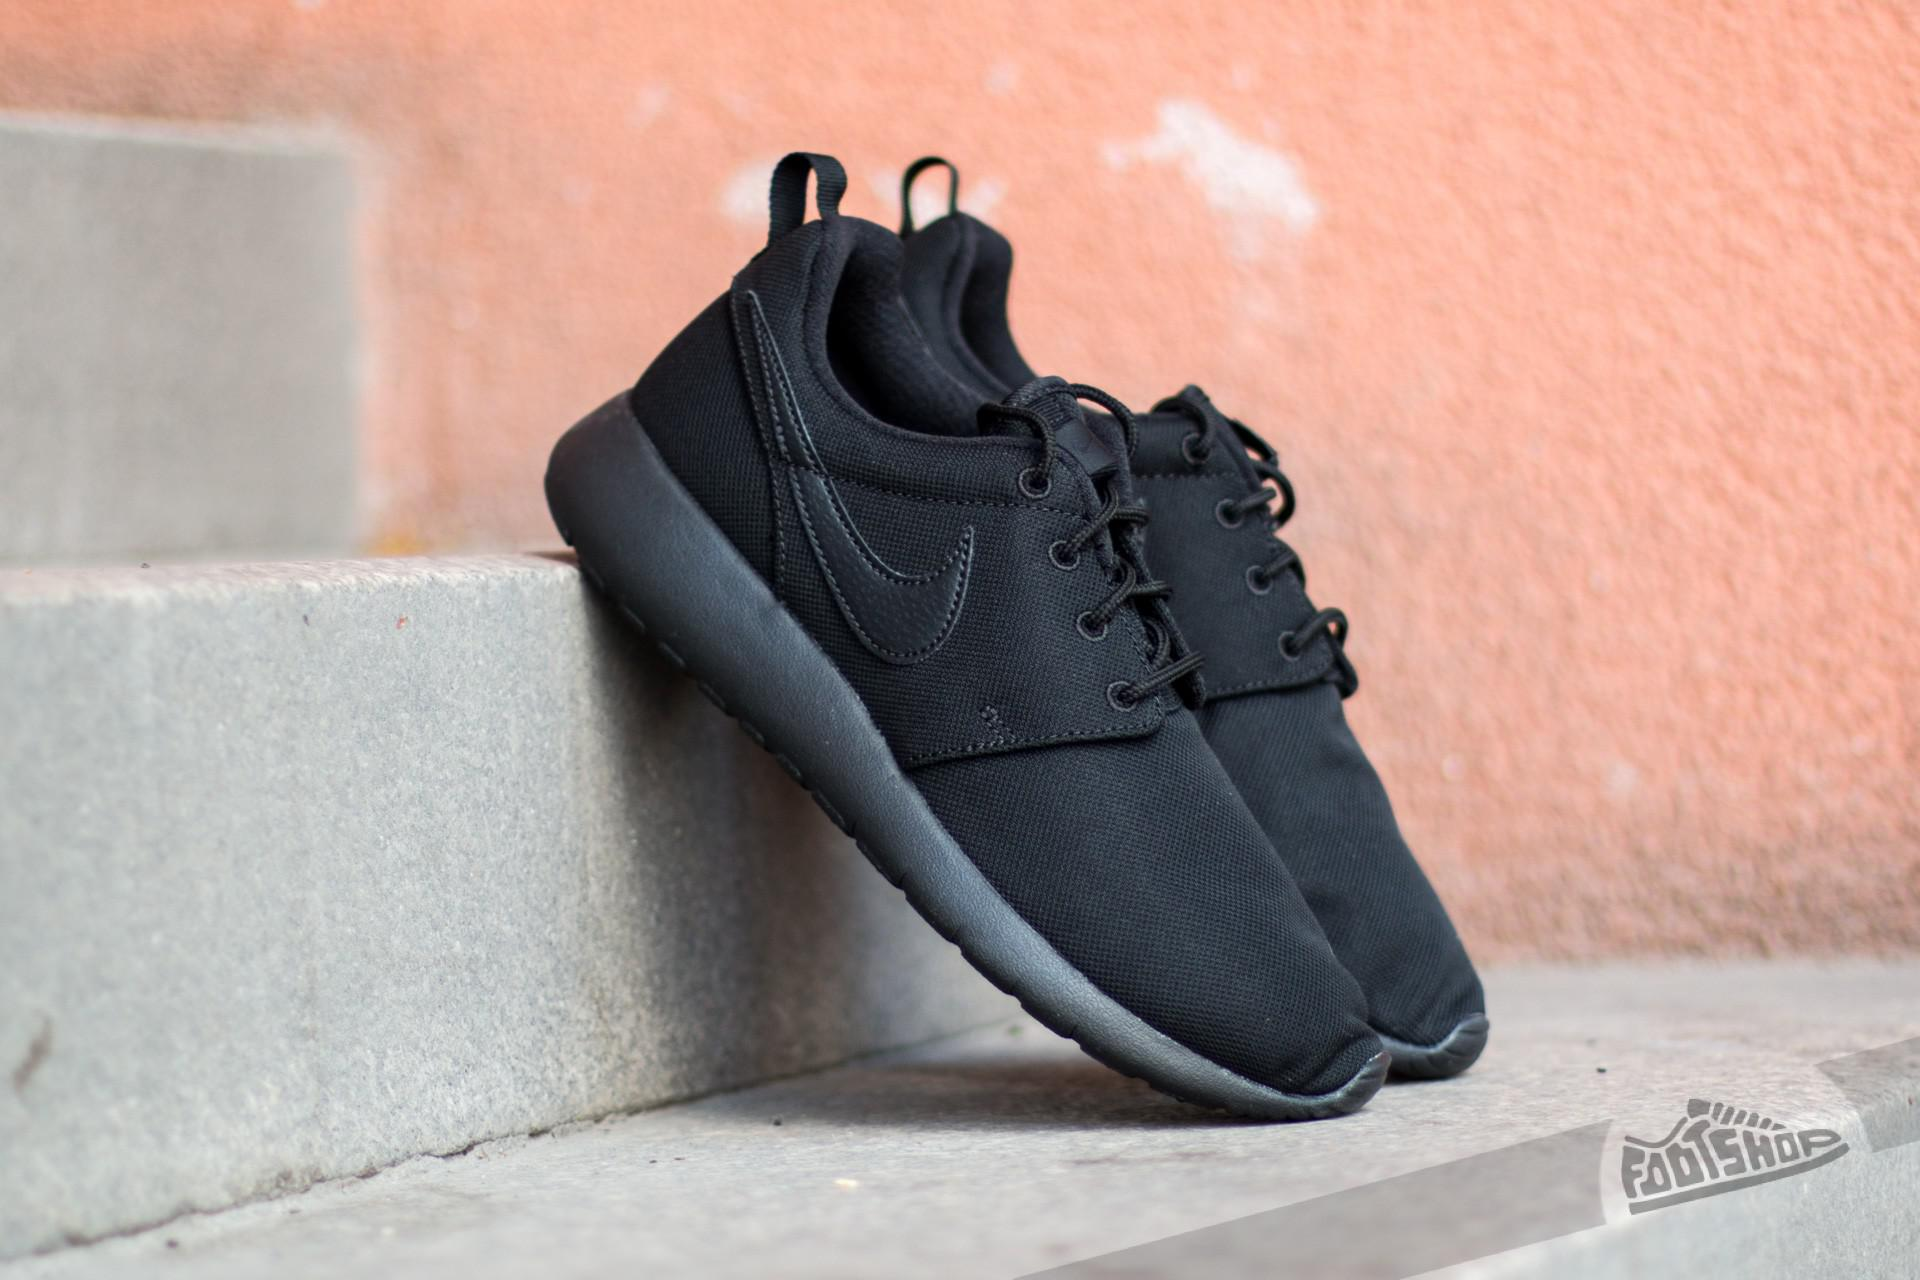 Nike W Nike Roshe Une Hyp Br Bas-tops & Chaussures yBnklGxGV